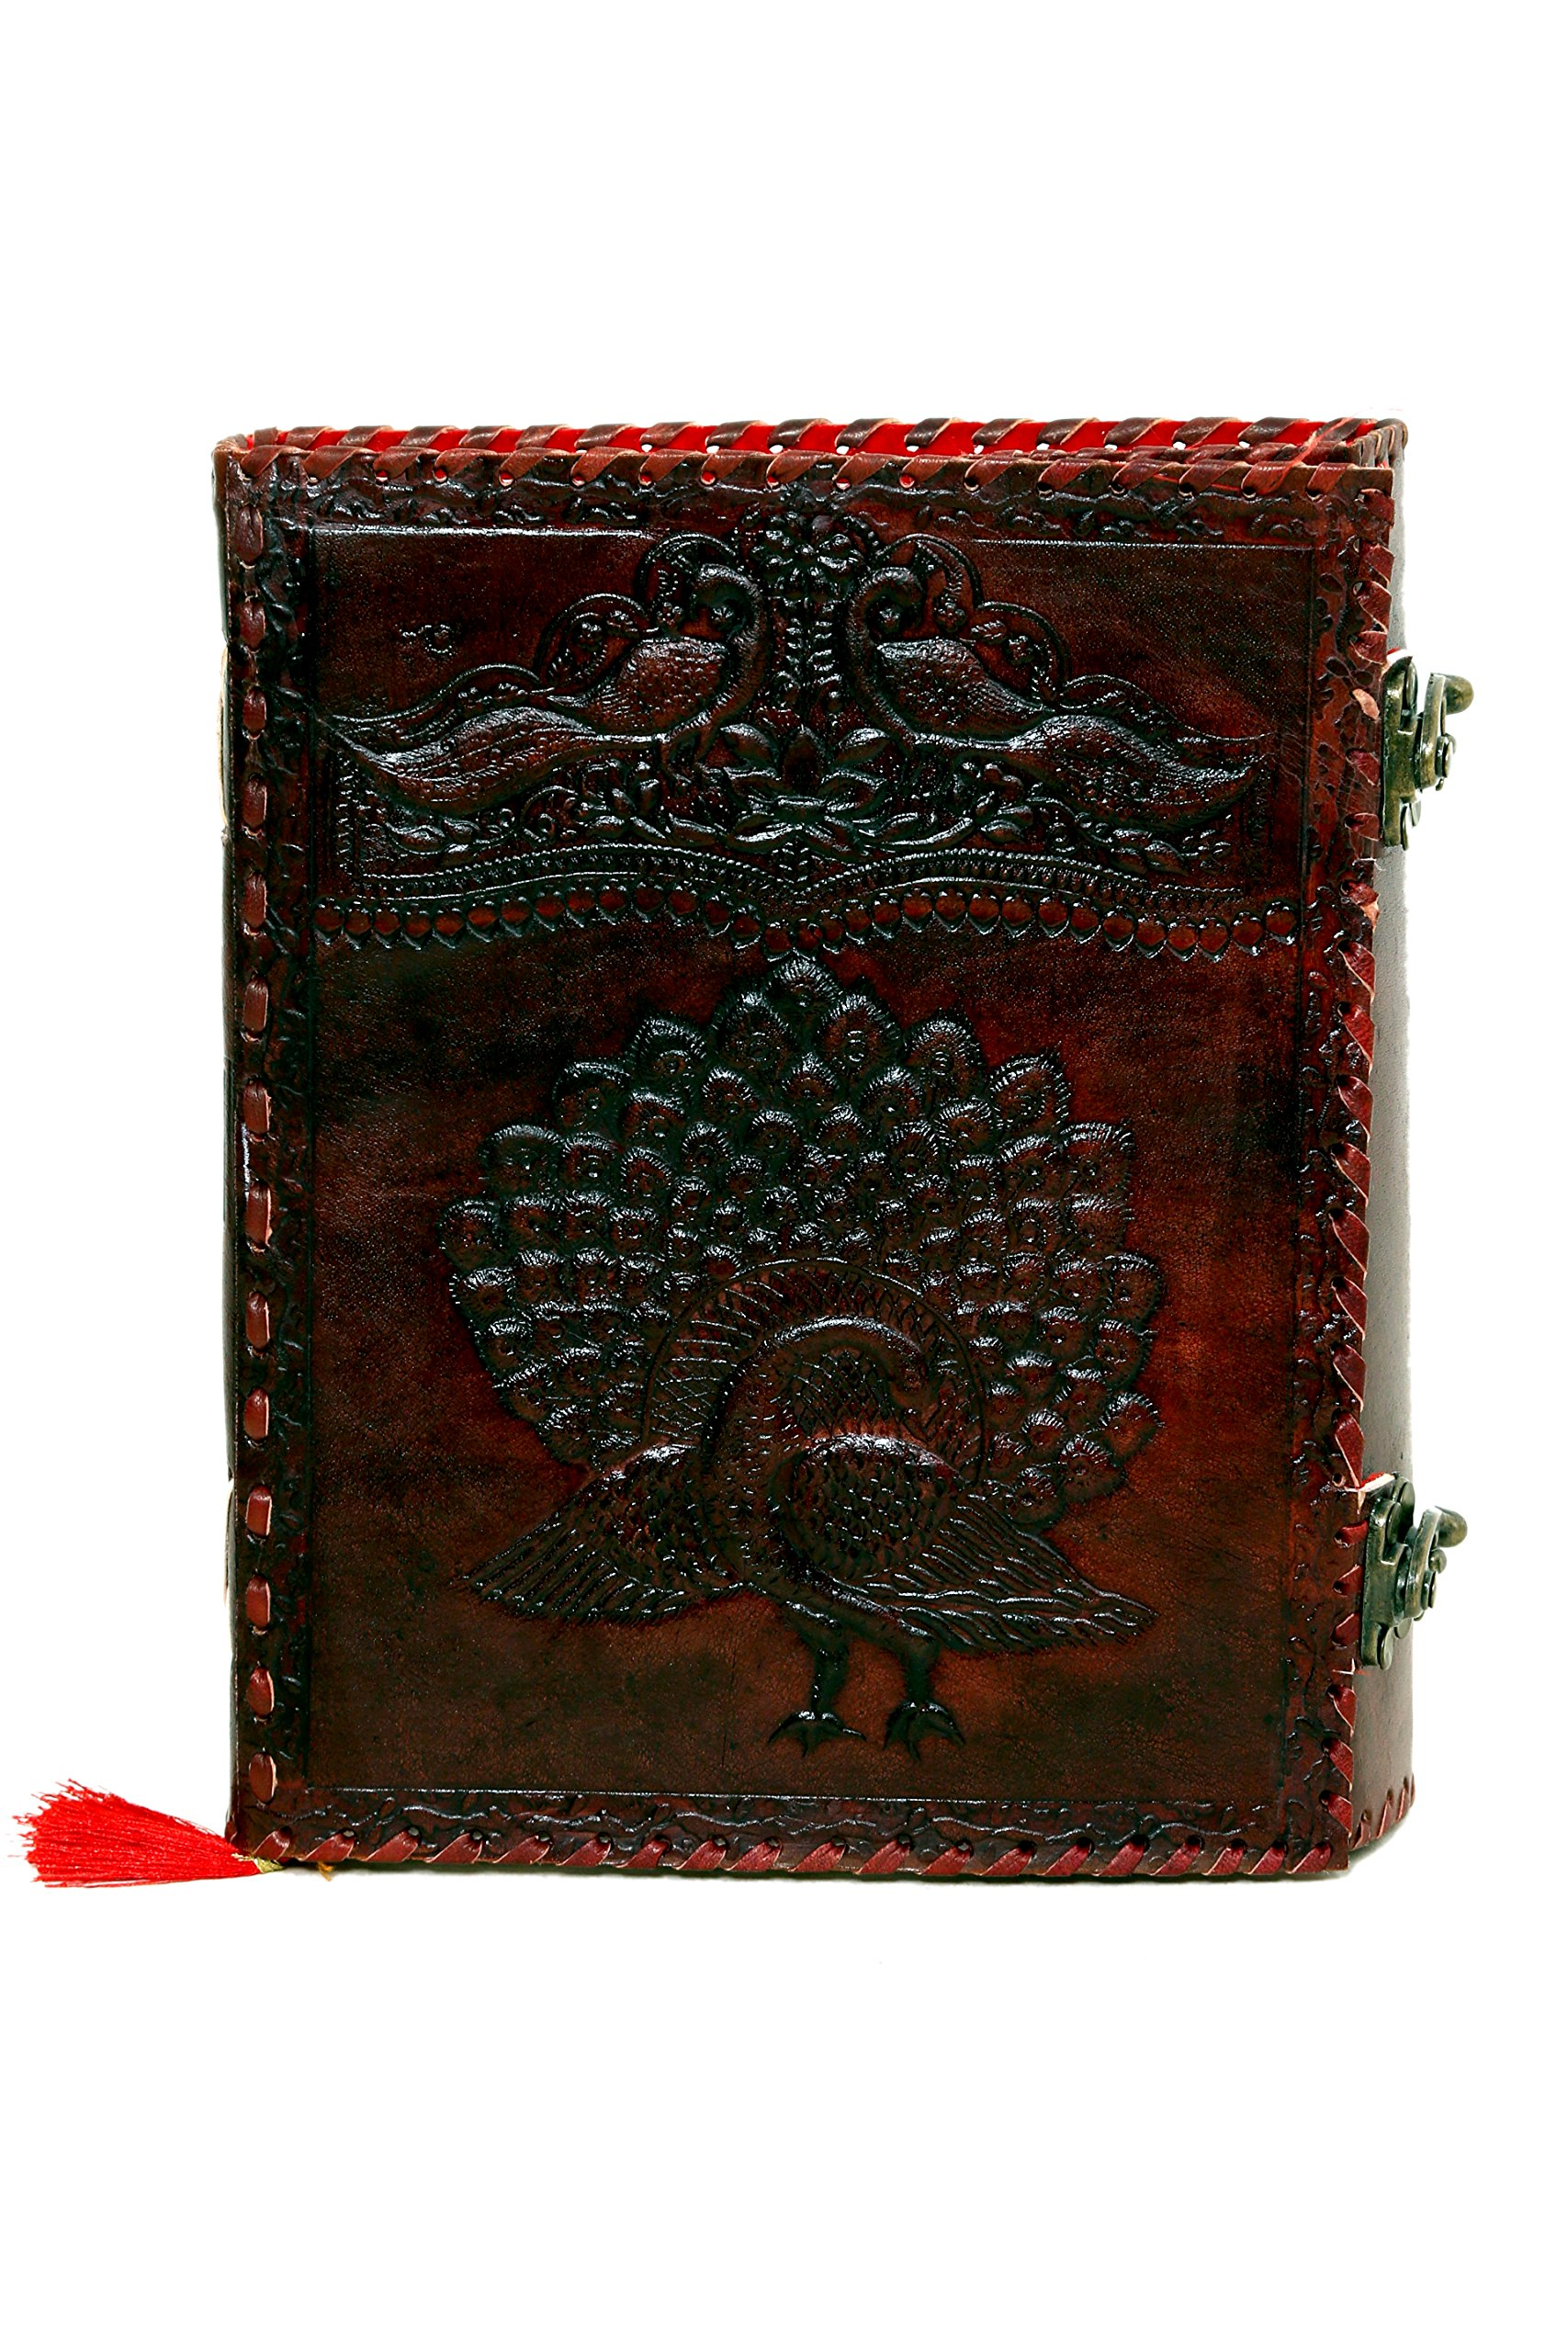 Imperial Vintage Handmade Leather Journal 9 X7'' Embossed Peacock Notebook, Diary, Sketchbook, Travel And Thought Blank Book for Writing & Sketching